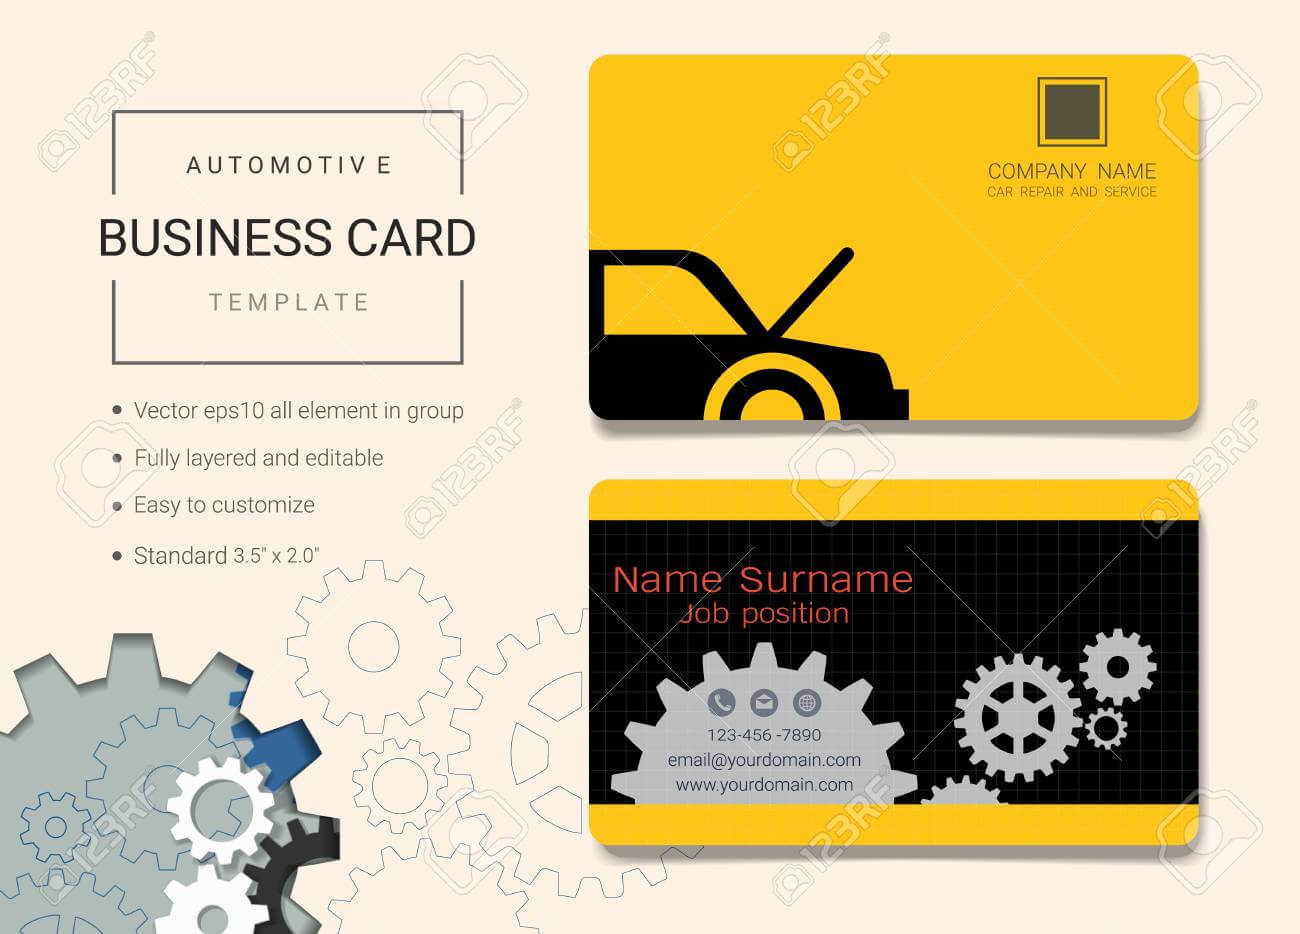 Automotive Business Card Or Name Card Template. Simple Style.. For Automotive Business Card Templates